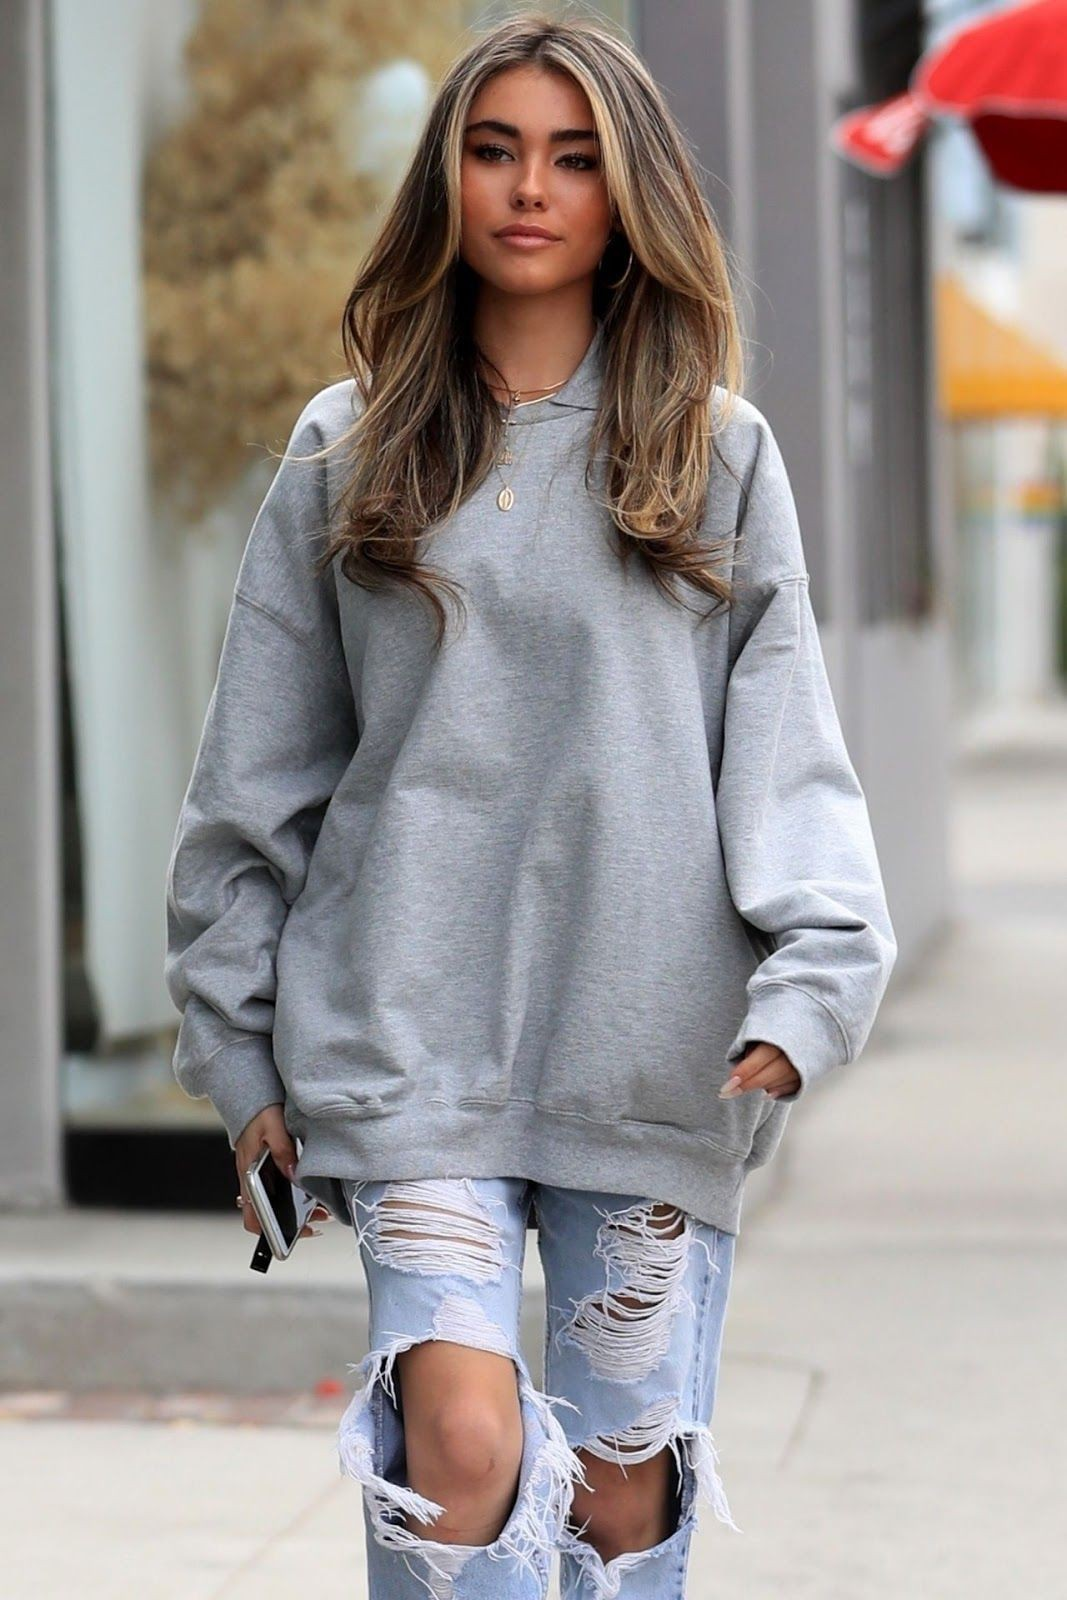 Colour outfit madison beer outfits urth caffé melrose, street fashion